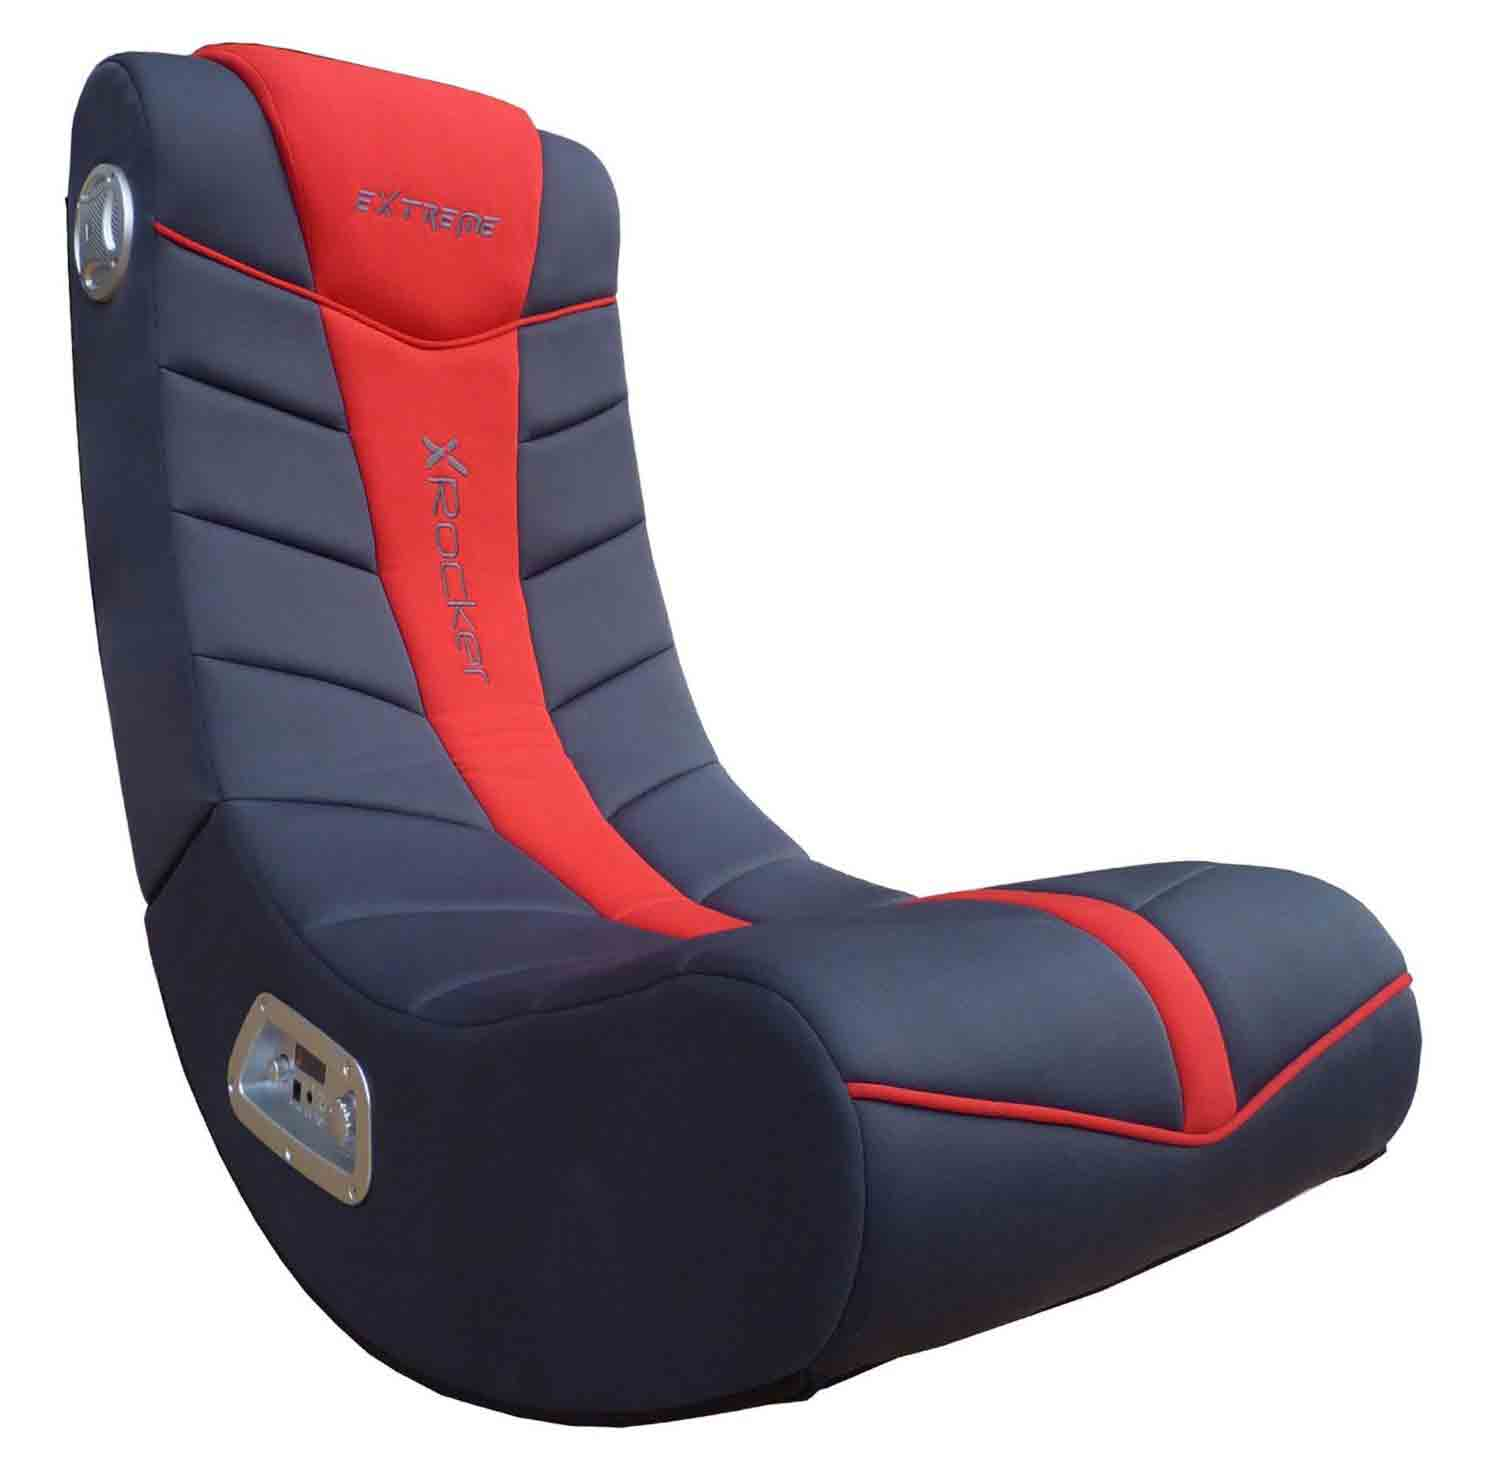 X-Rocker-51491-Extreme-III-rocker-gaming-chair